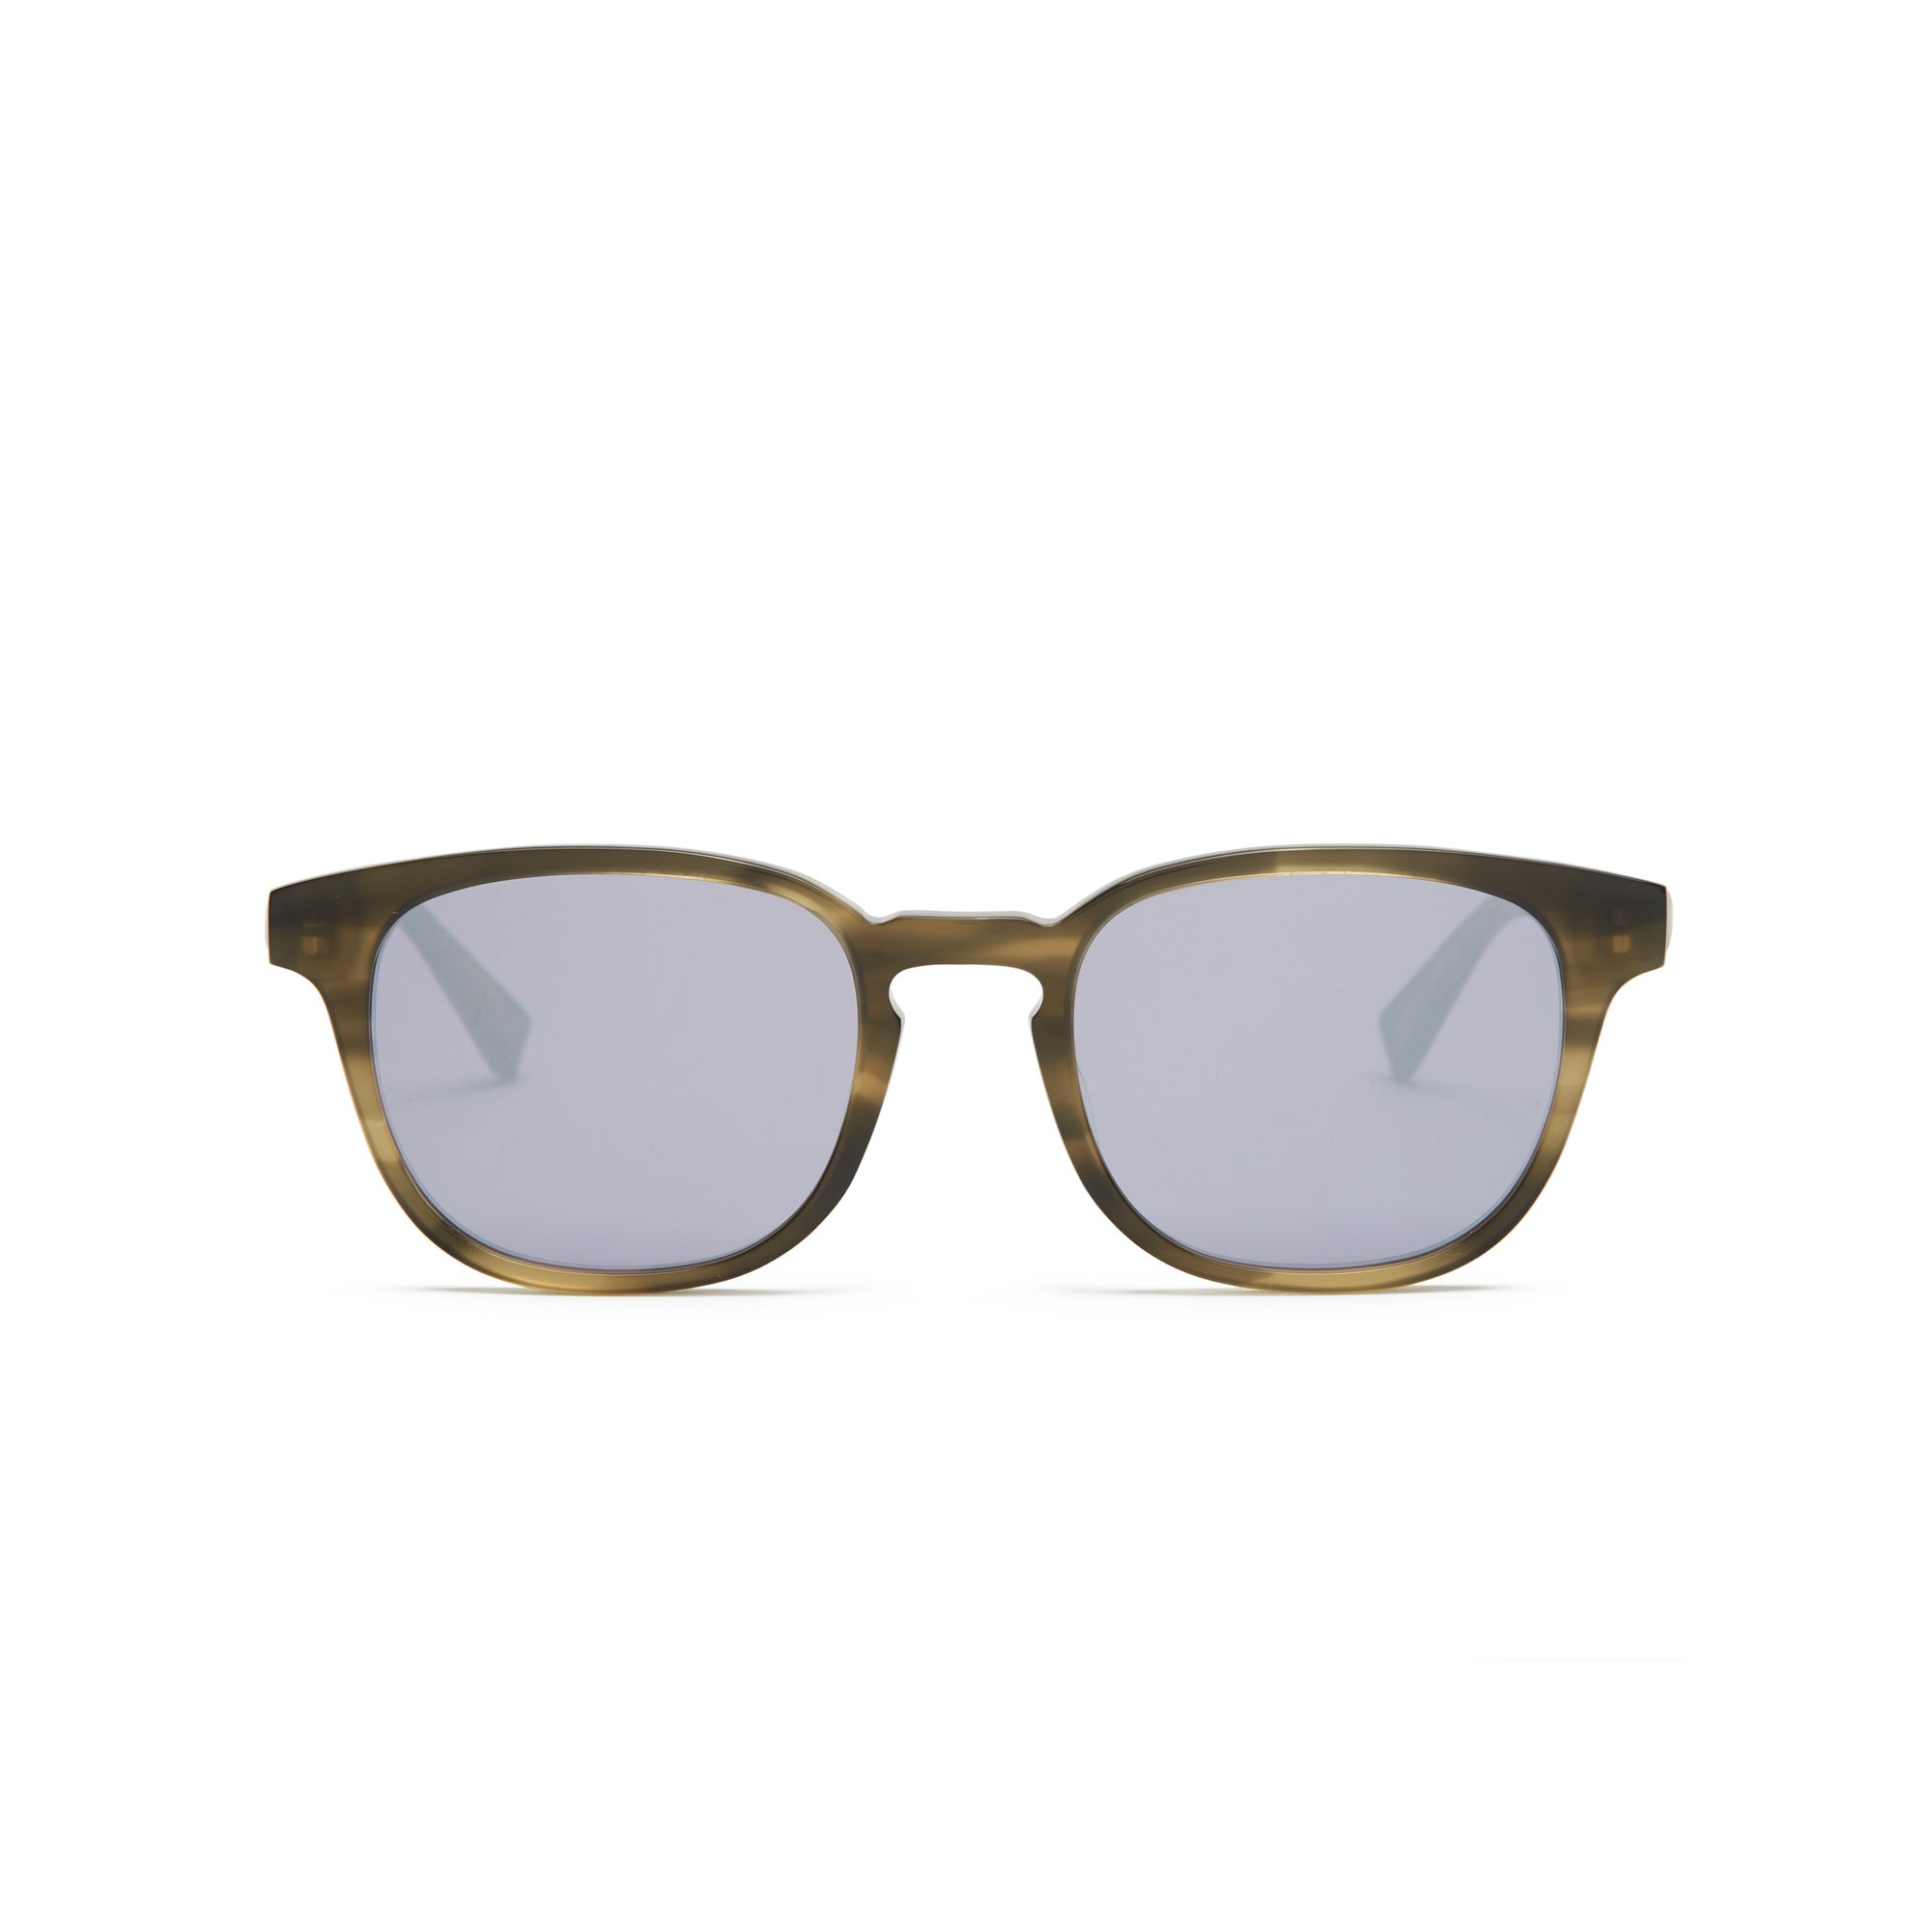 covry-asian-fit-sunglasses-mizar-brunswick